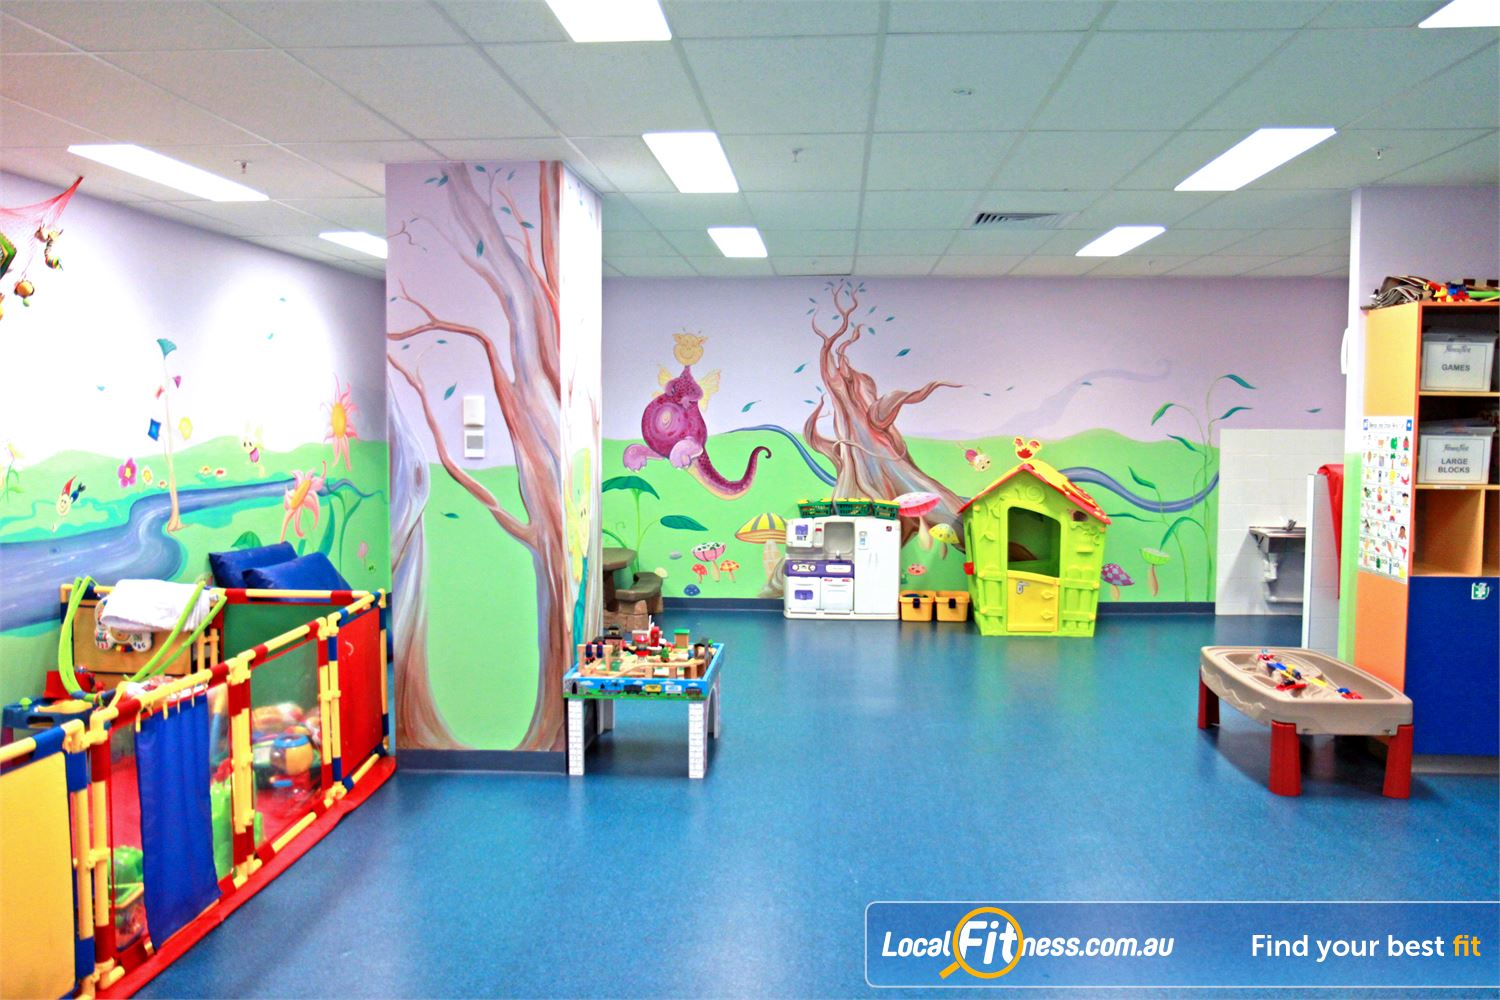 Goodlife Health Clubs Near West Leederville Convenient Subiaco Child Minding services.